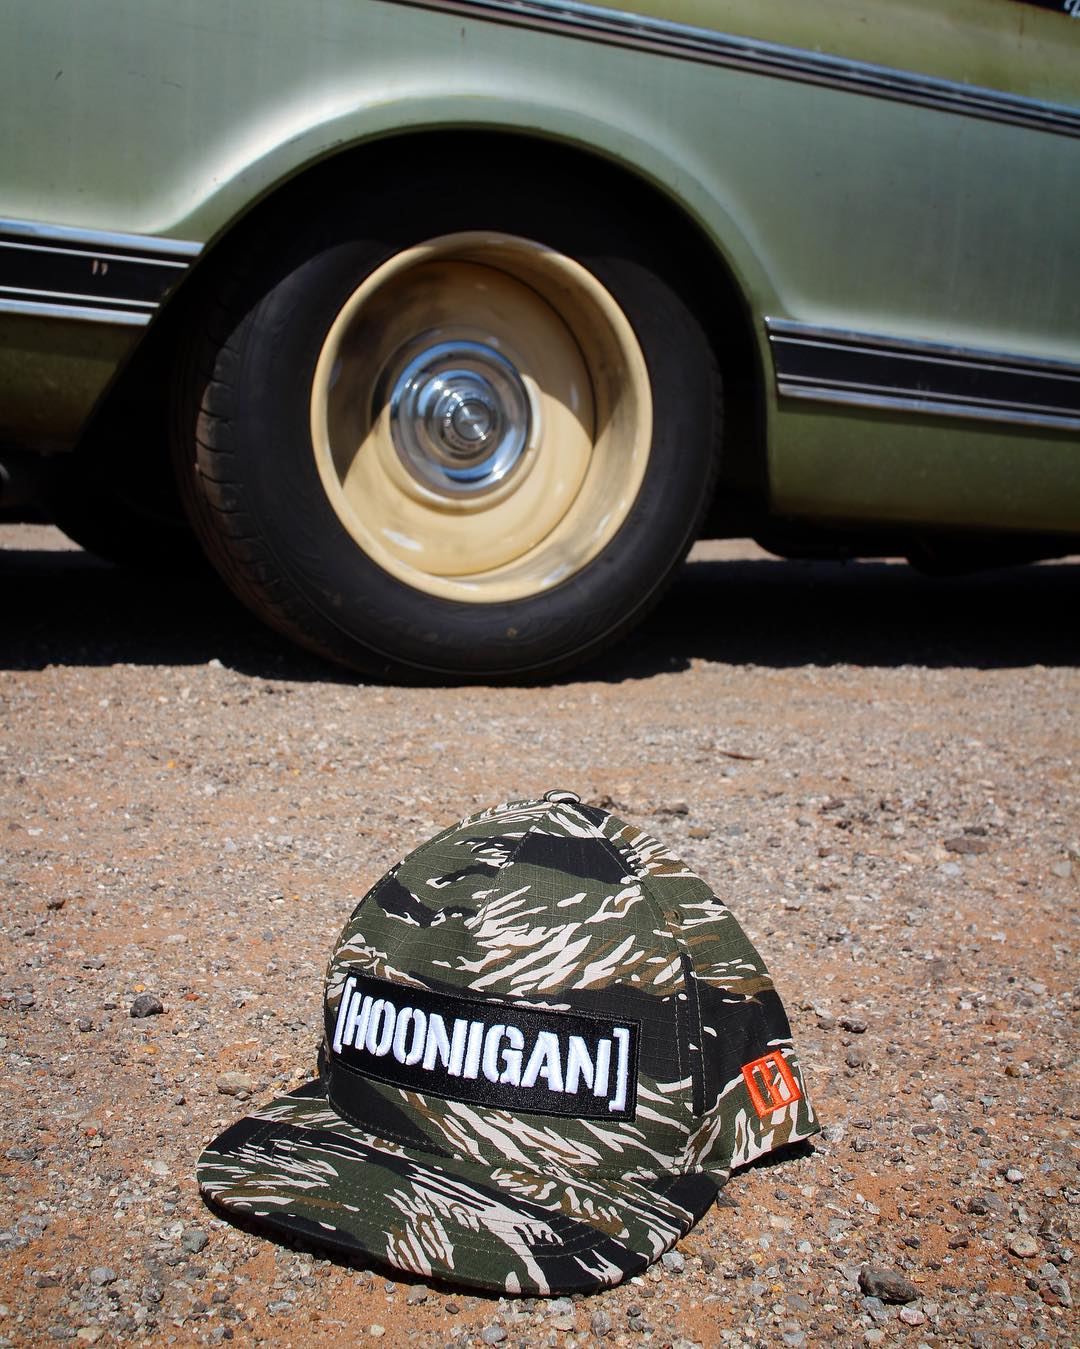 We stacked up on some new snap backs, like this Tiger Camo C-bar. Hit the link in the bio to check em out. #hooniganDOTcom